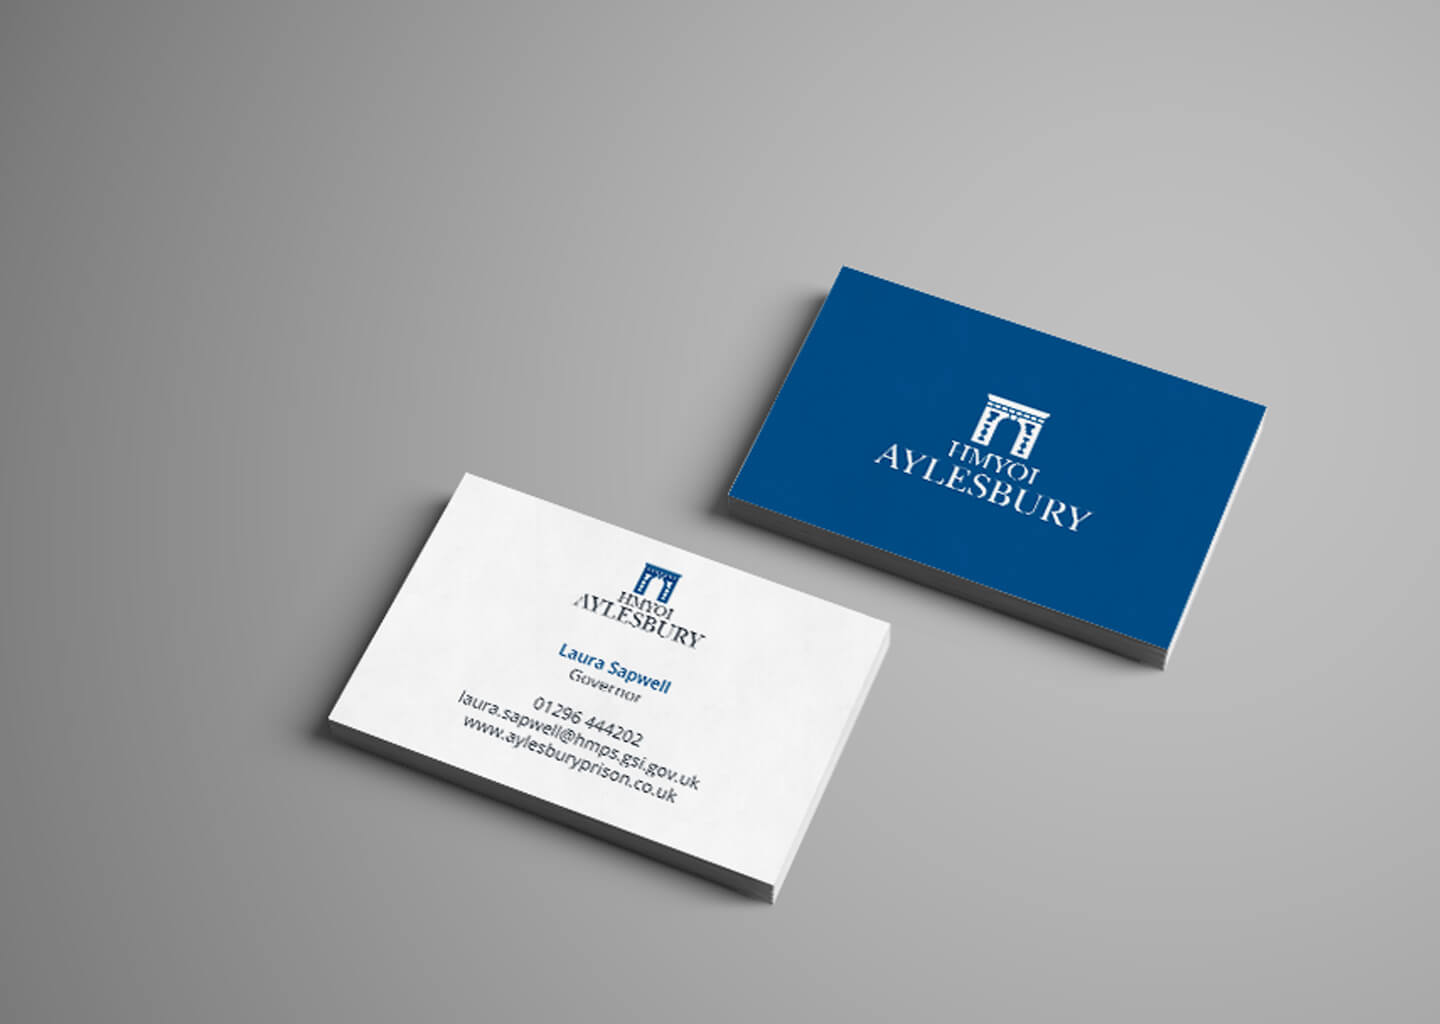 Aylesbury Prison business cards